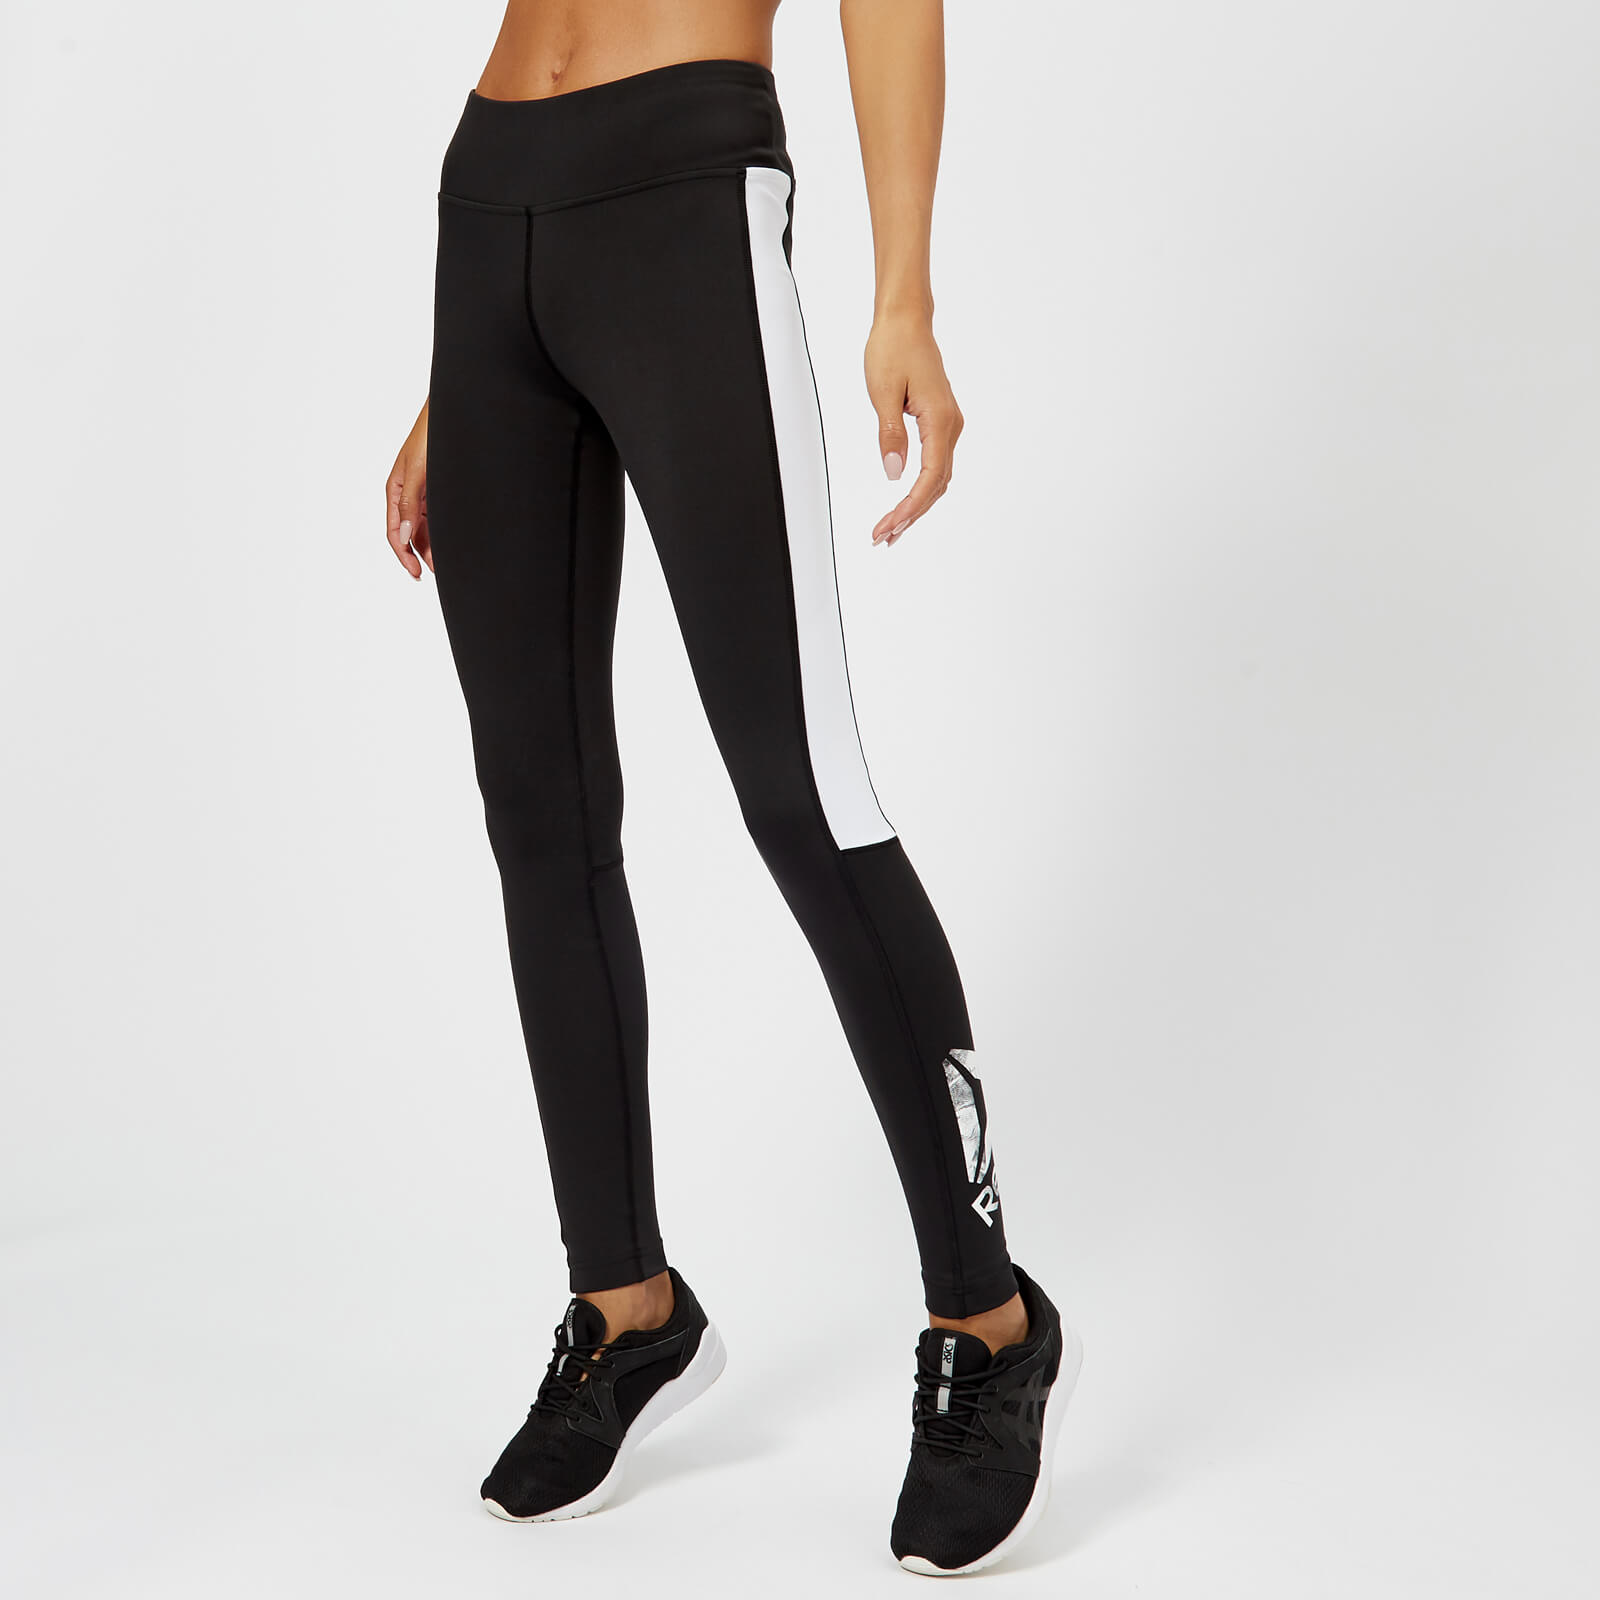 54827db266b Reebok Women's Big Delta Tights - Black Sports & Leisure | TheHut.com